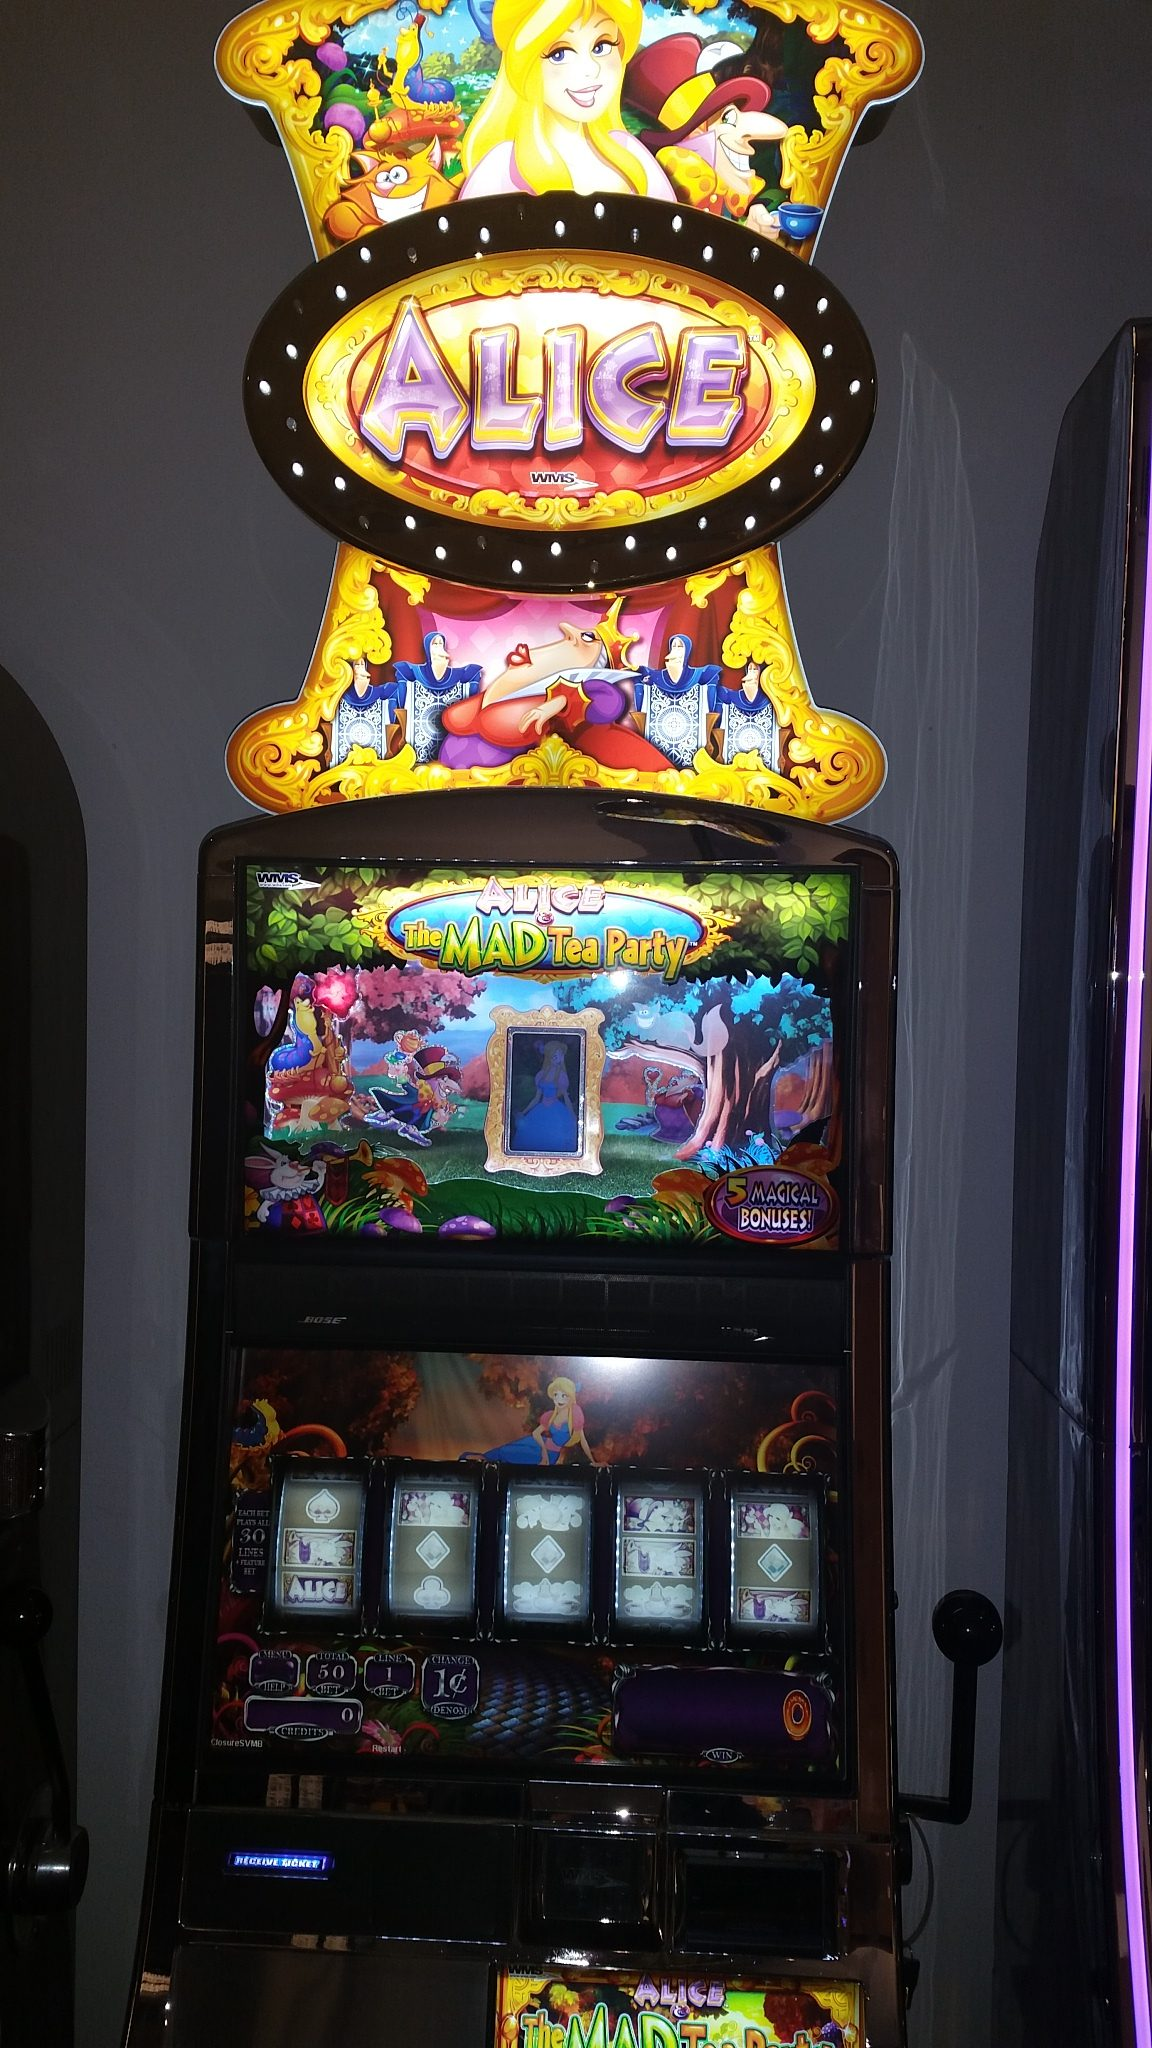 WMS Alice The Mad Tea Party Video Bonus Slot Machine